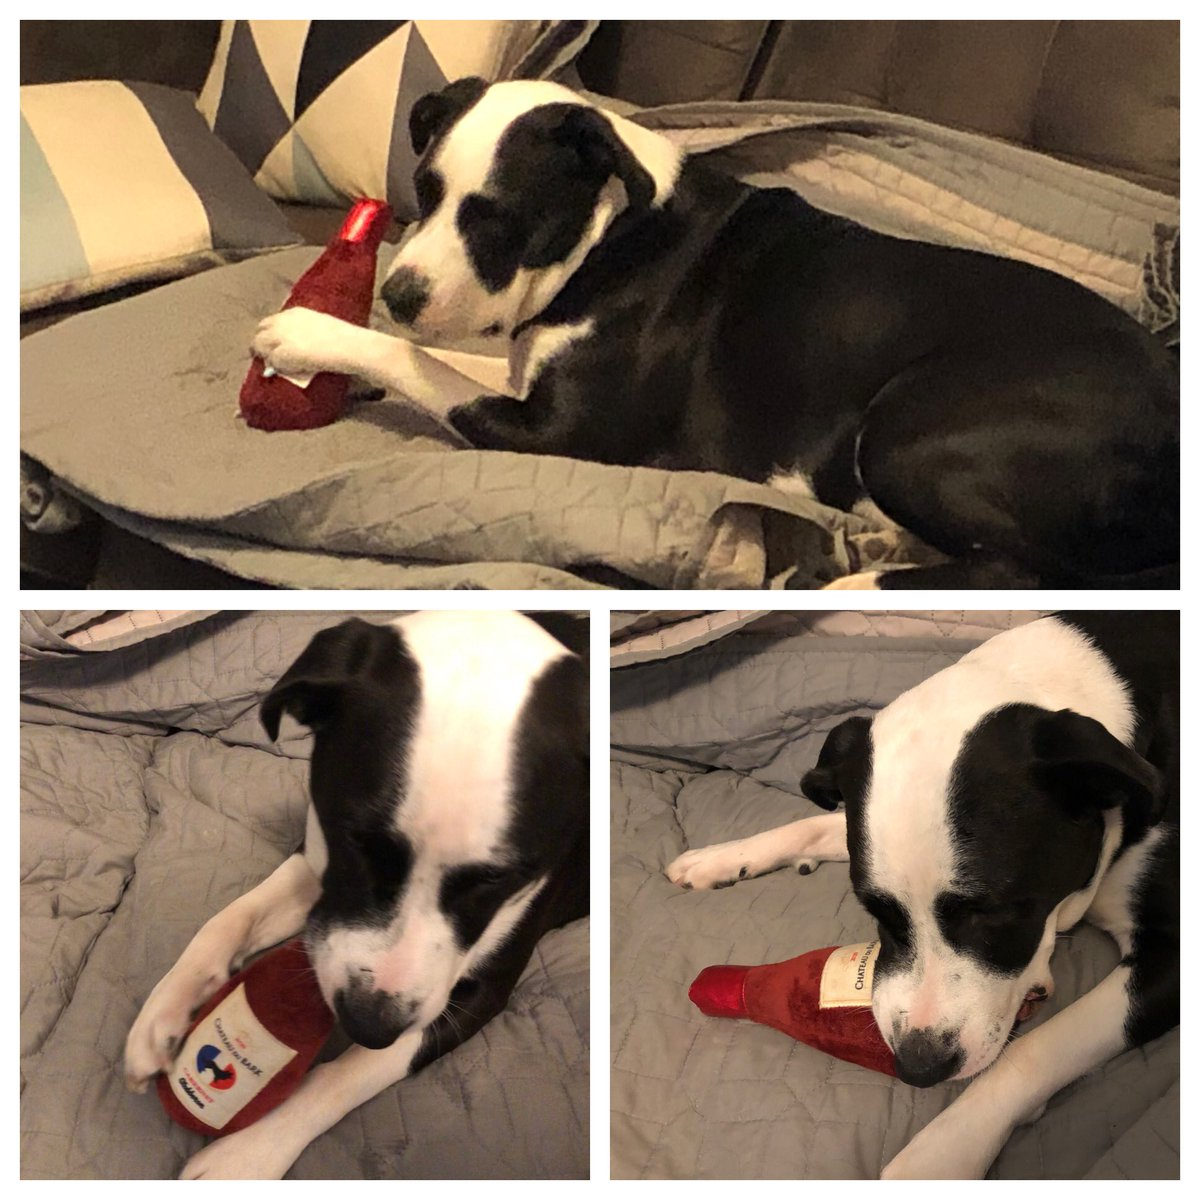 I didn't feel so good yesterday so I just kind of laid low. But today I made the choice to start drinking wine! I grabbed my bottle of #ChateauDuBark from #BarkBox @barkbox & went to town! I started feeling better! #Woof #GordoTheDog #BulladorLife (ITS JUST A TOY!)pic.twitter.com/QKex6ydMyA